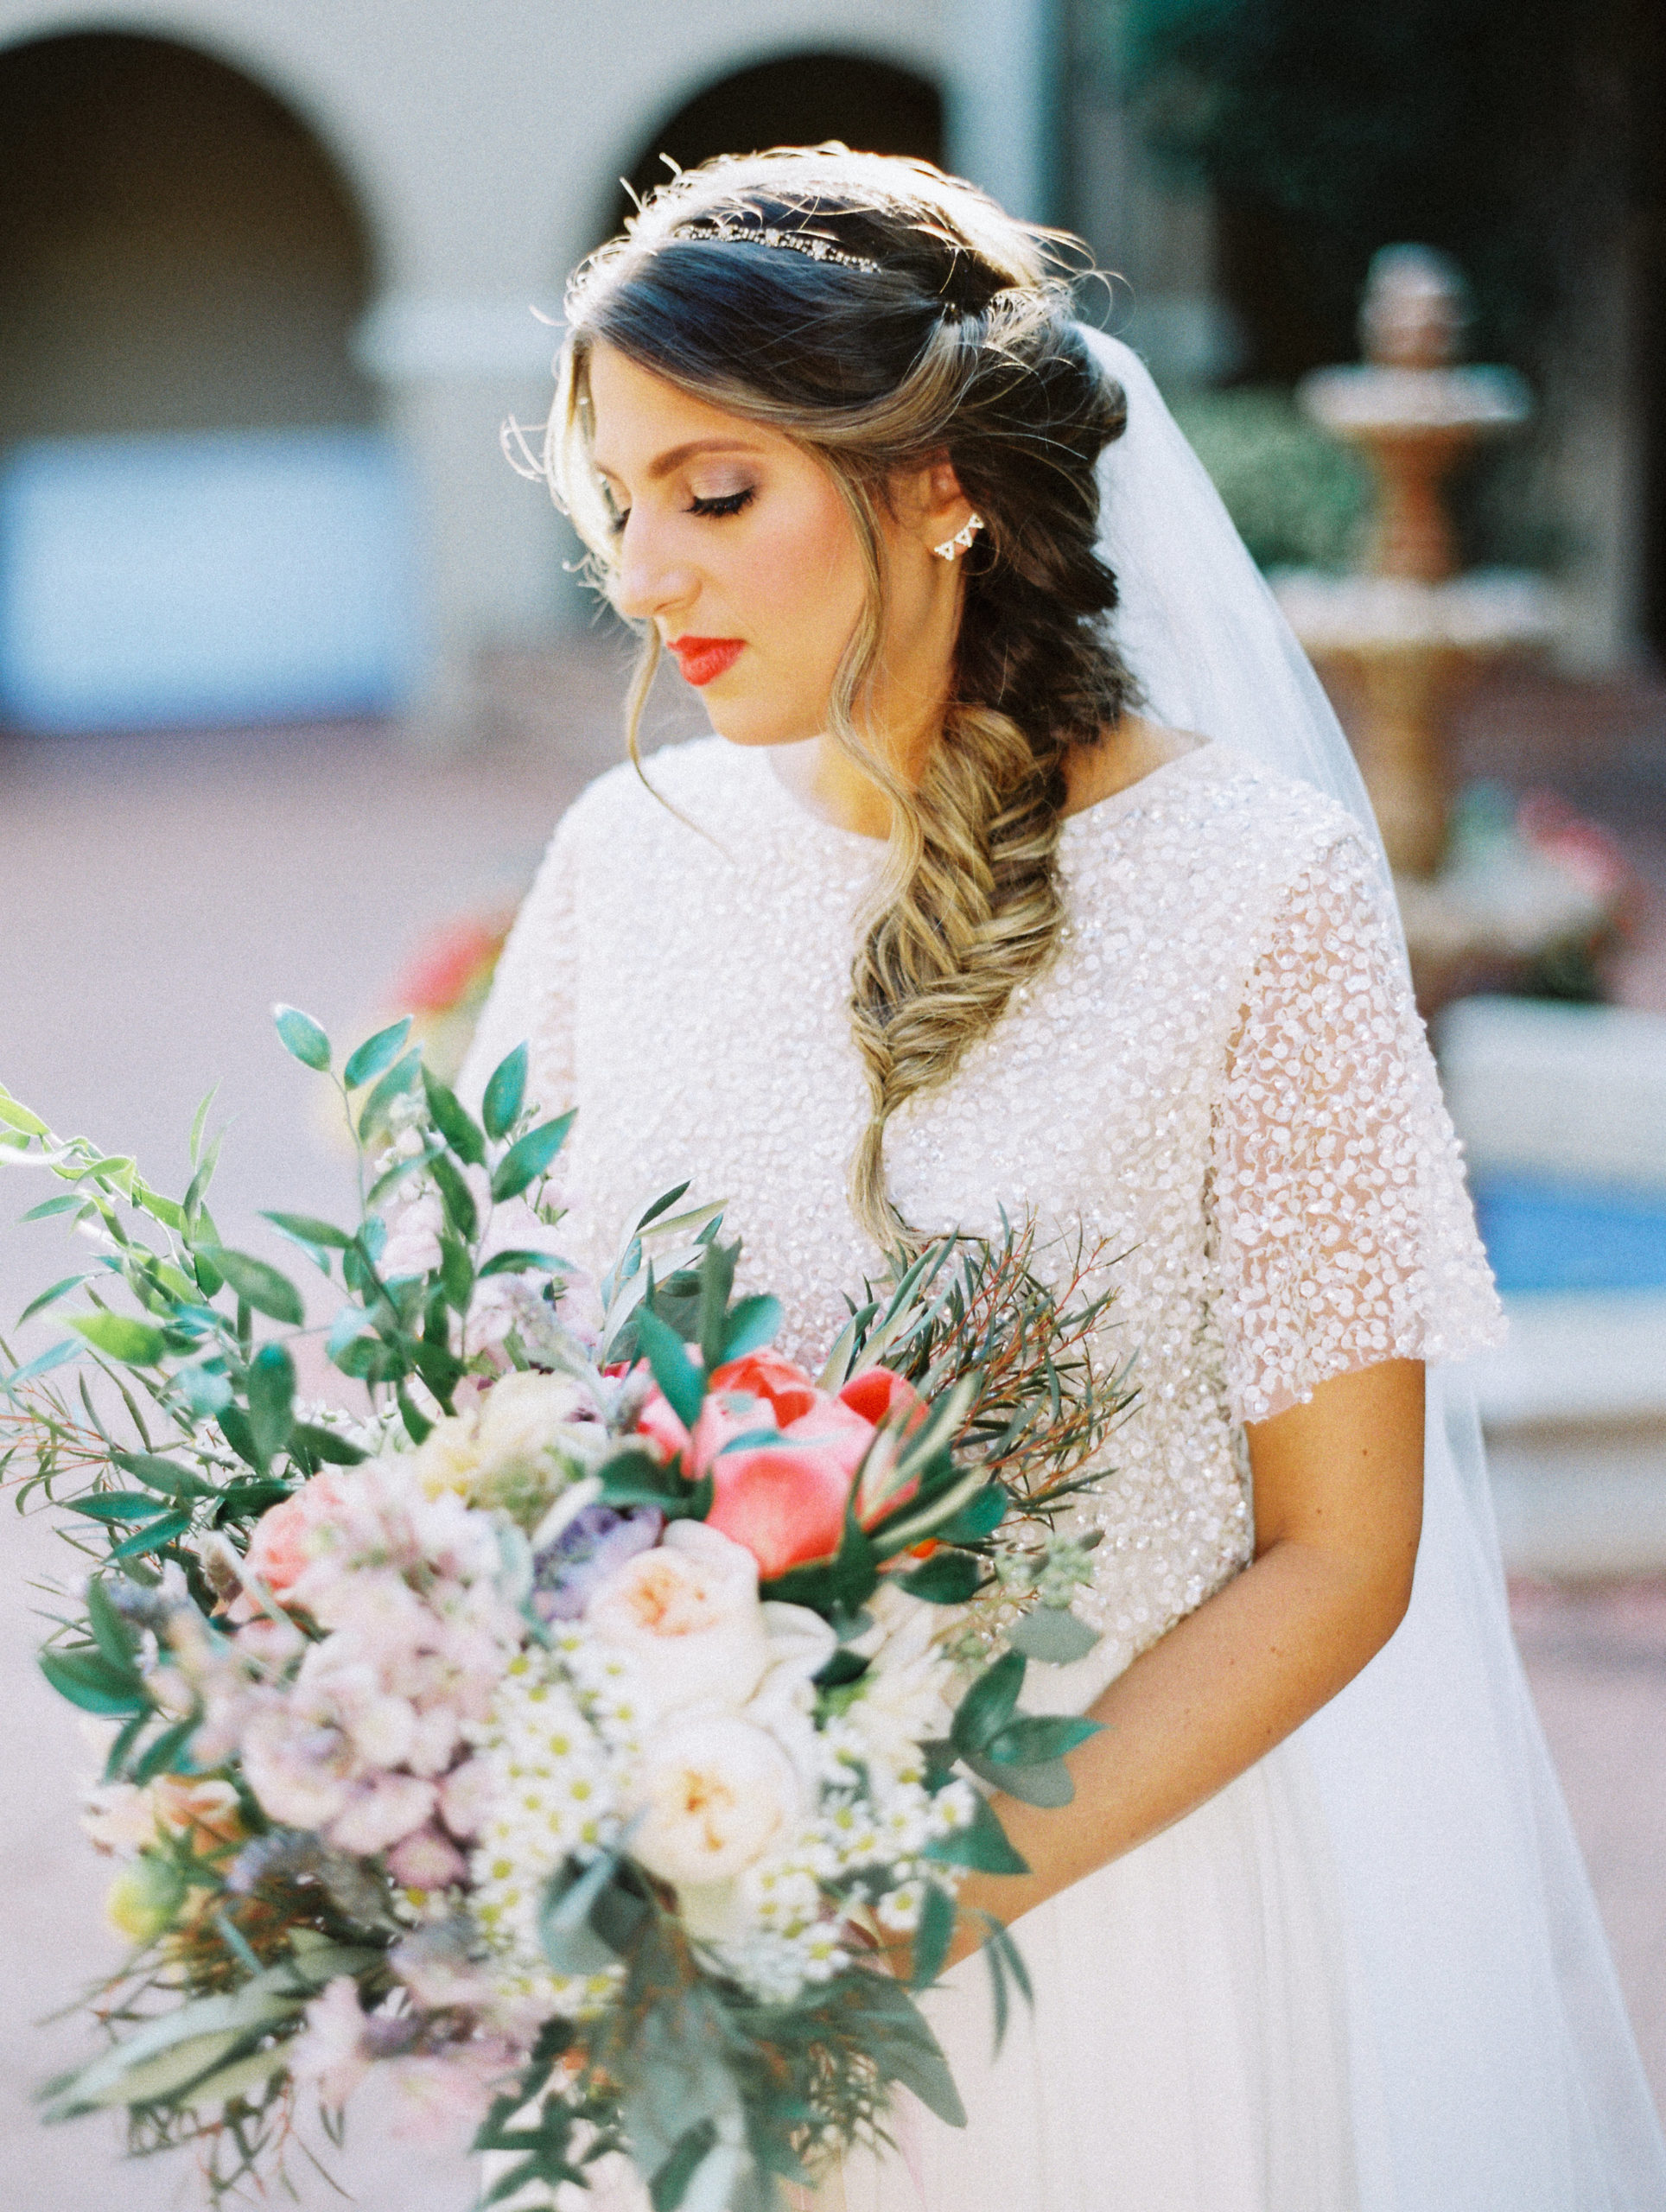 bride showcasing her flowers and bridal hair styles